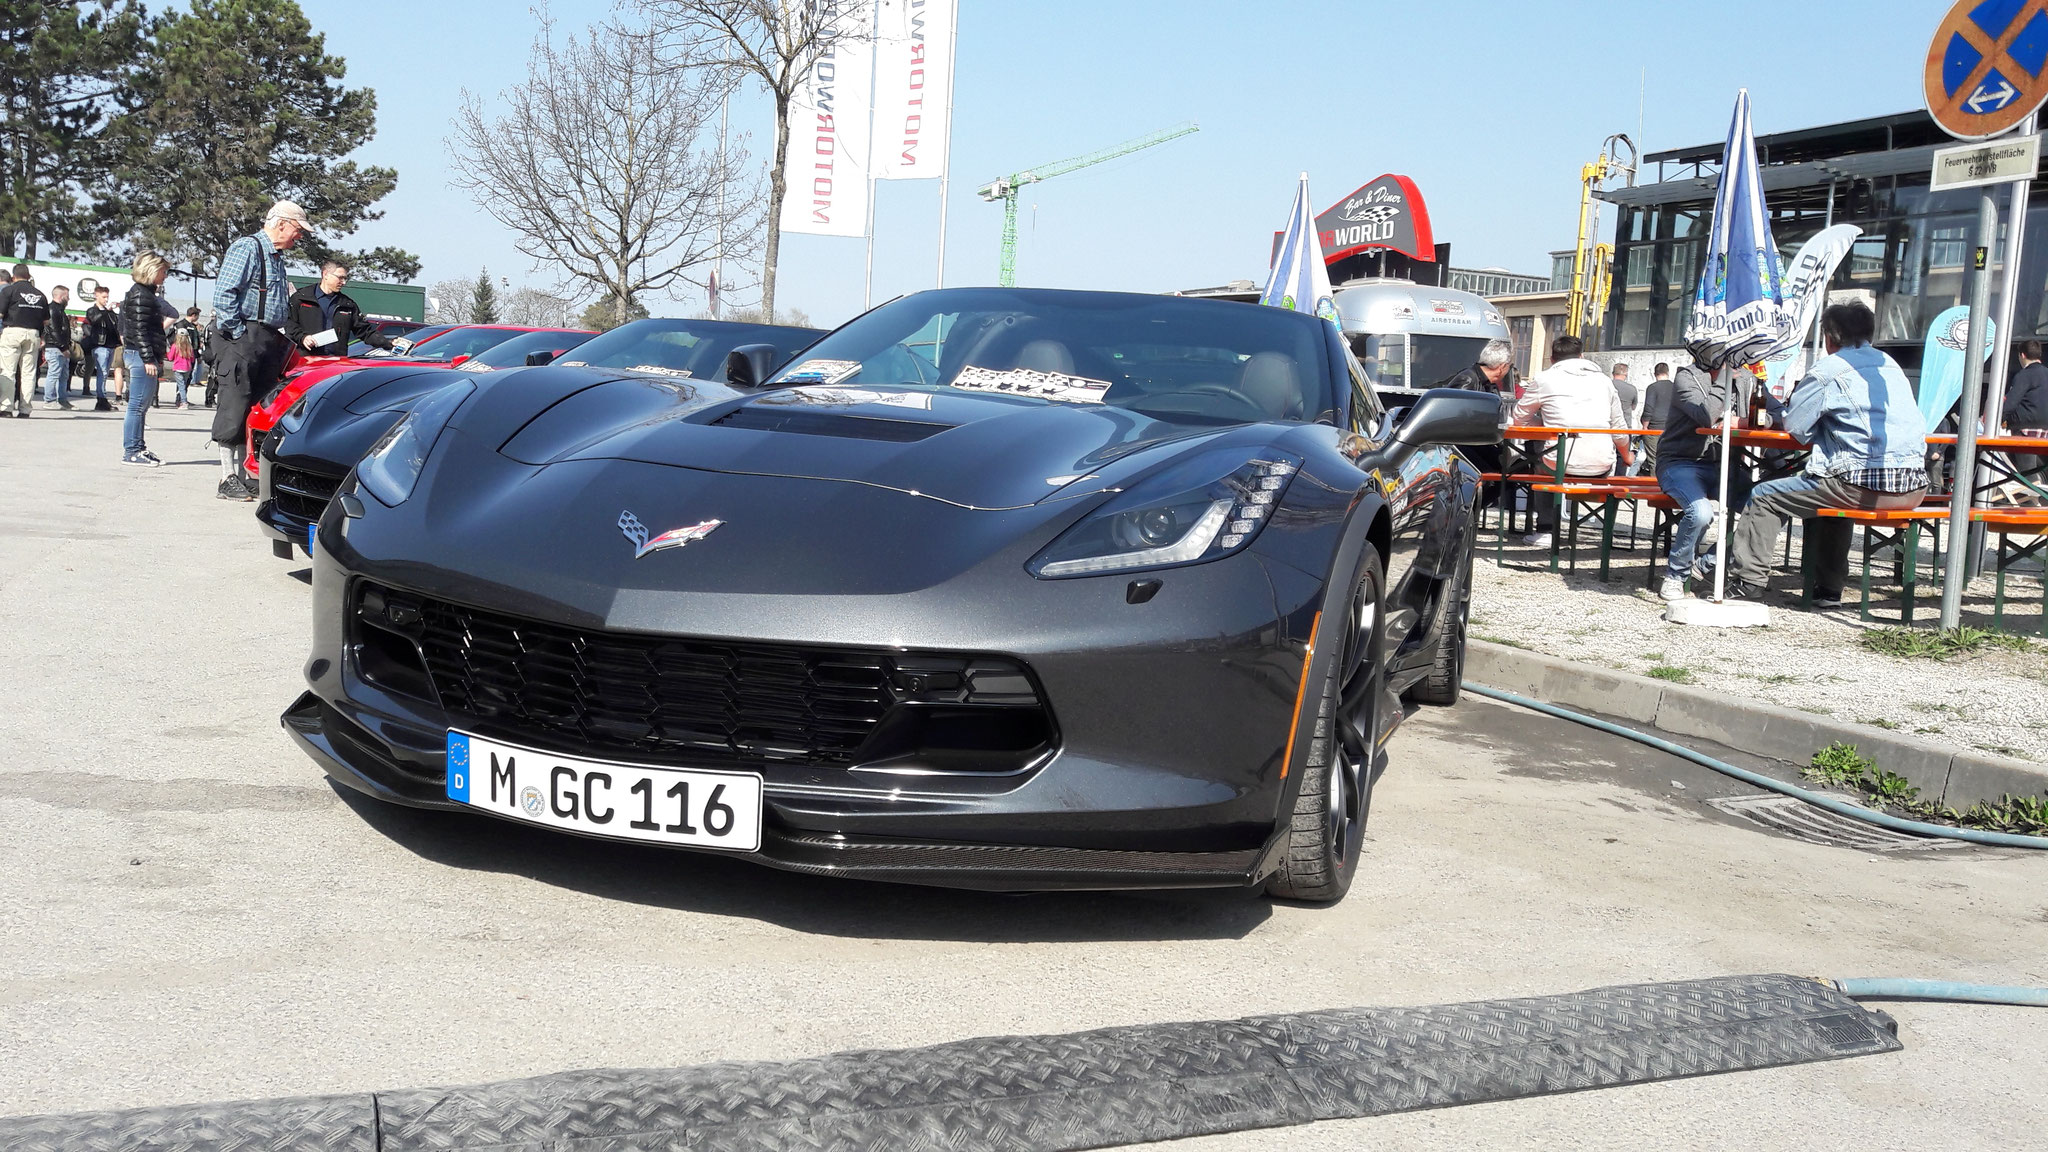 Chevrolet Corvette C7 Z06 Convertible - M-GC-116